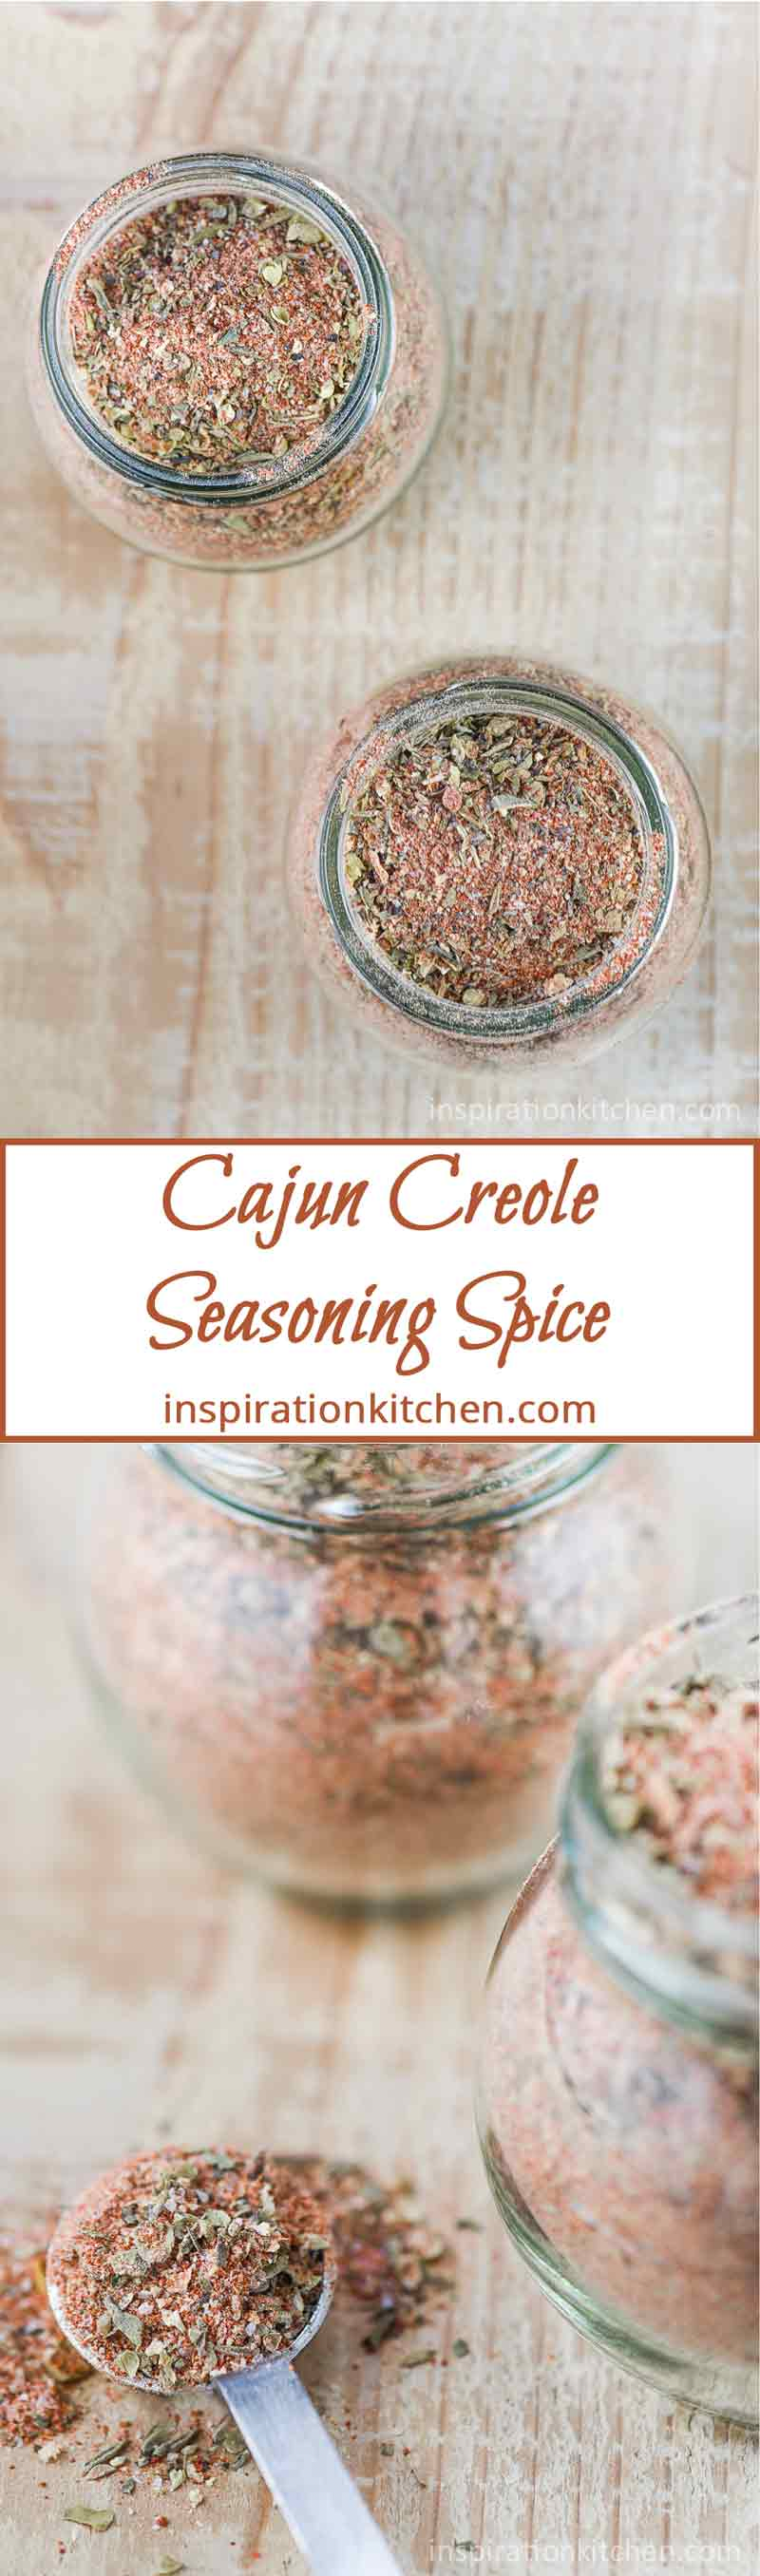 Cajun Creole Seasoning Spice Collage | Inspiration Kitchen